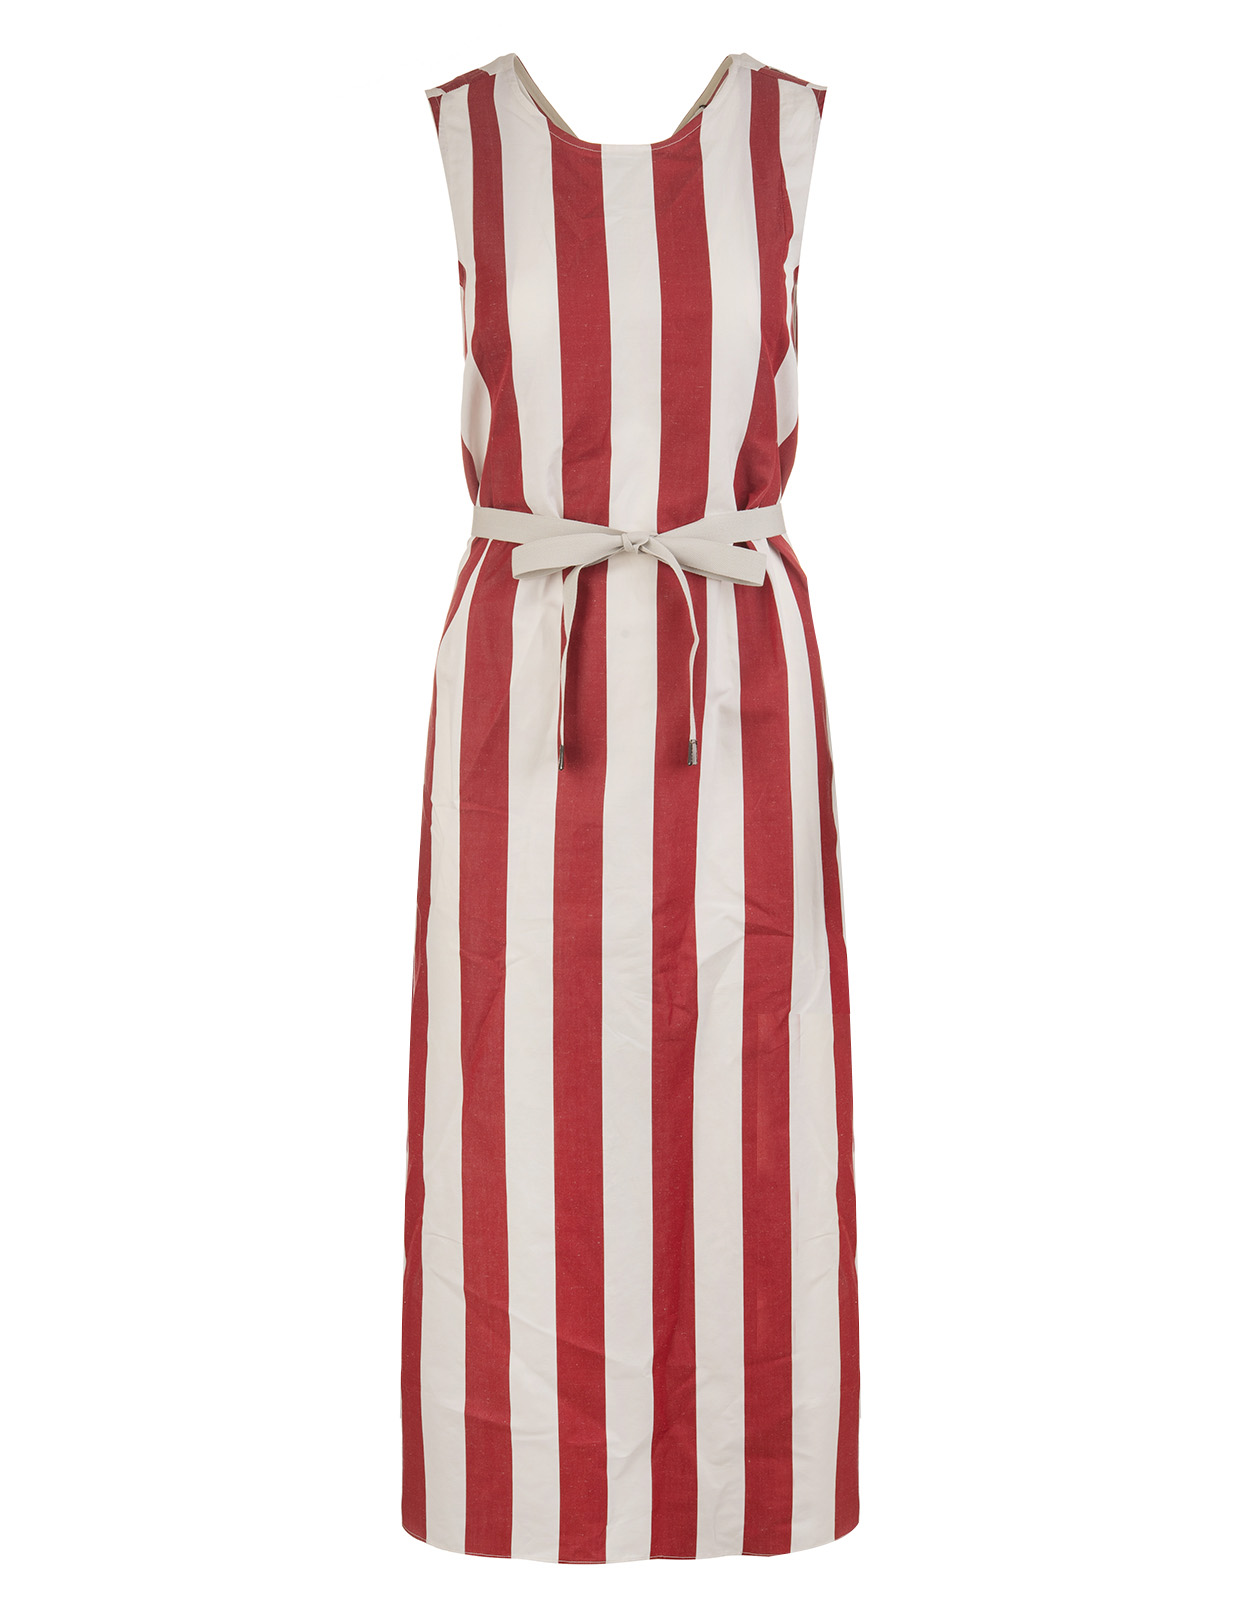 991d4057e03 White And Red Boccale Dress - MAX MARA - Russocapri